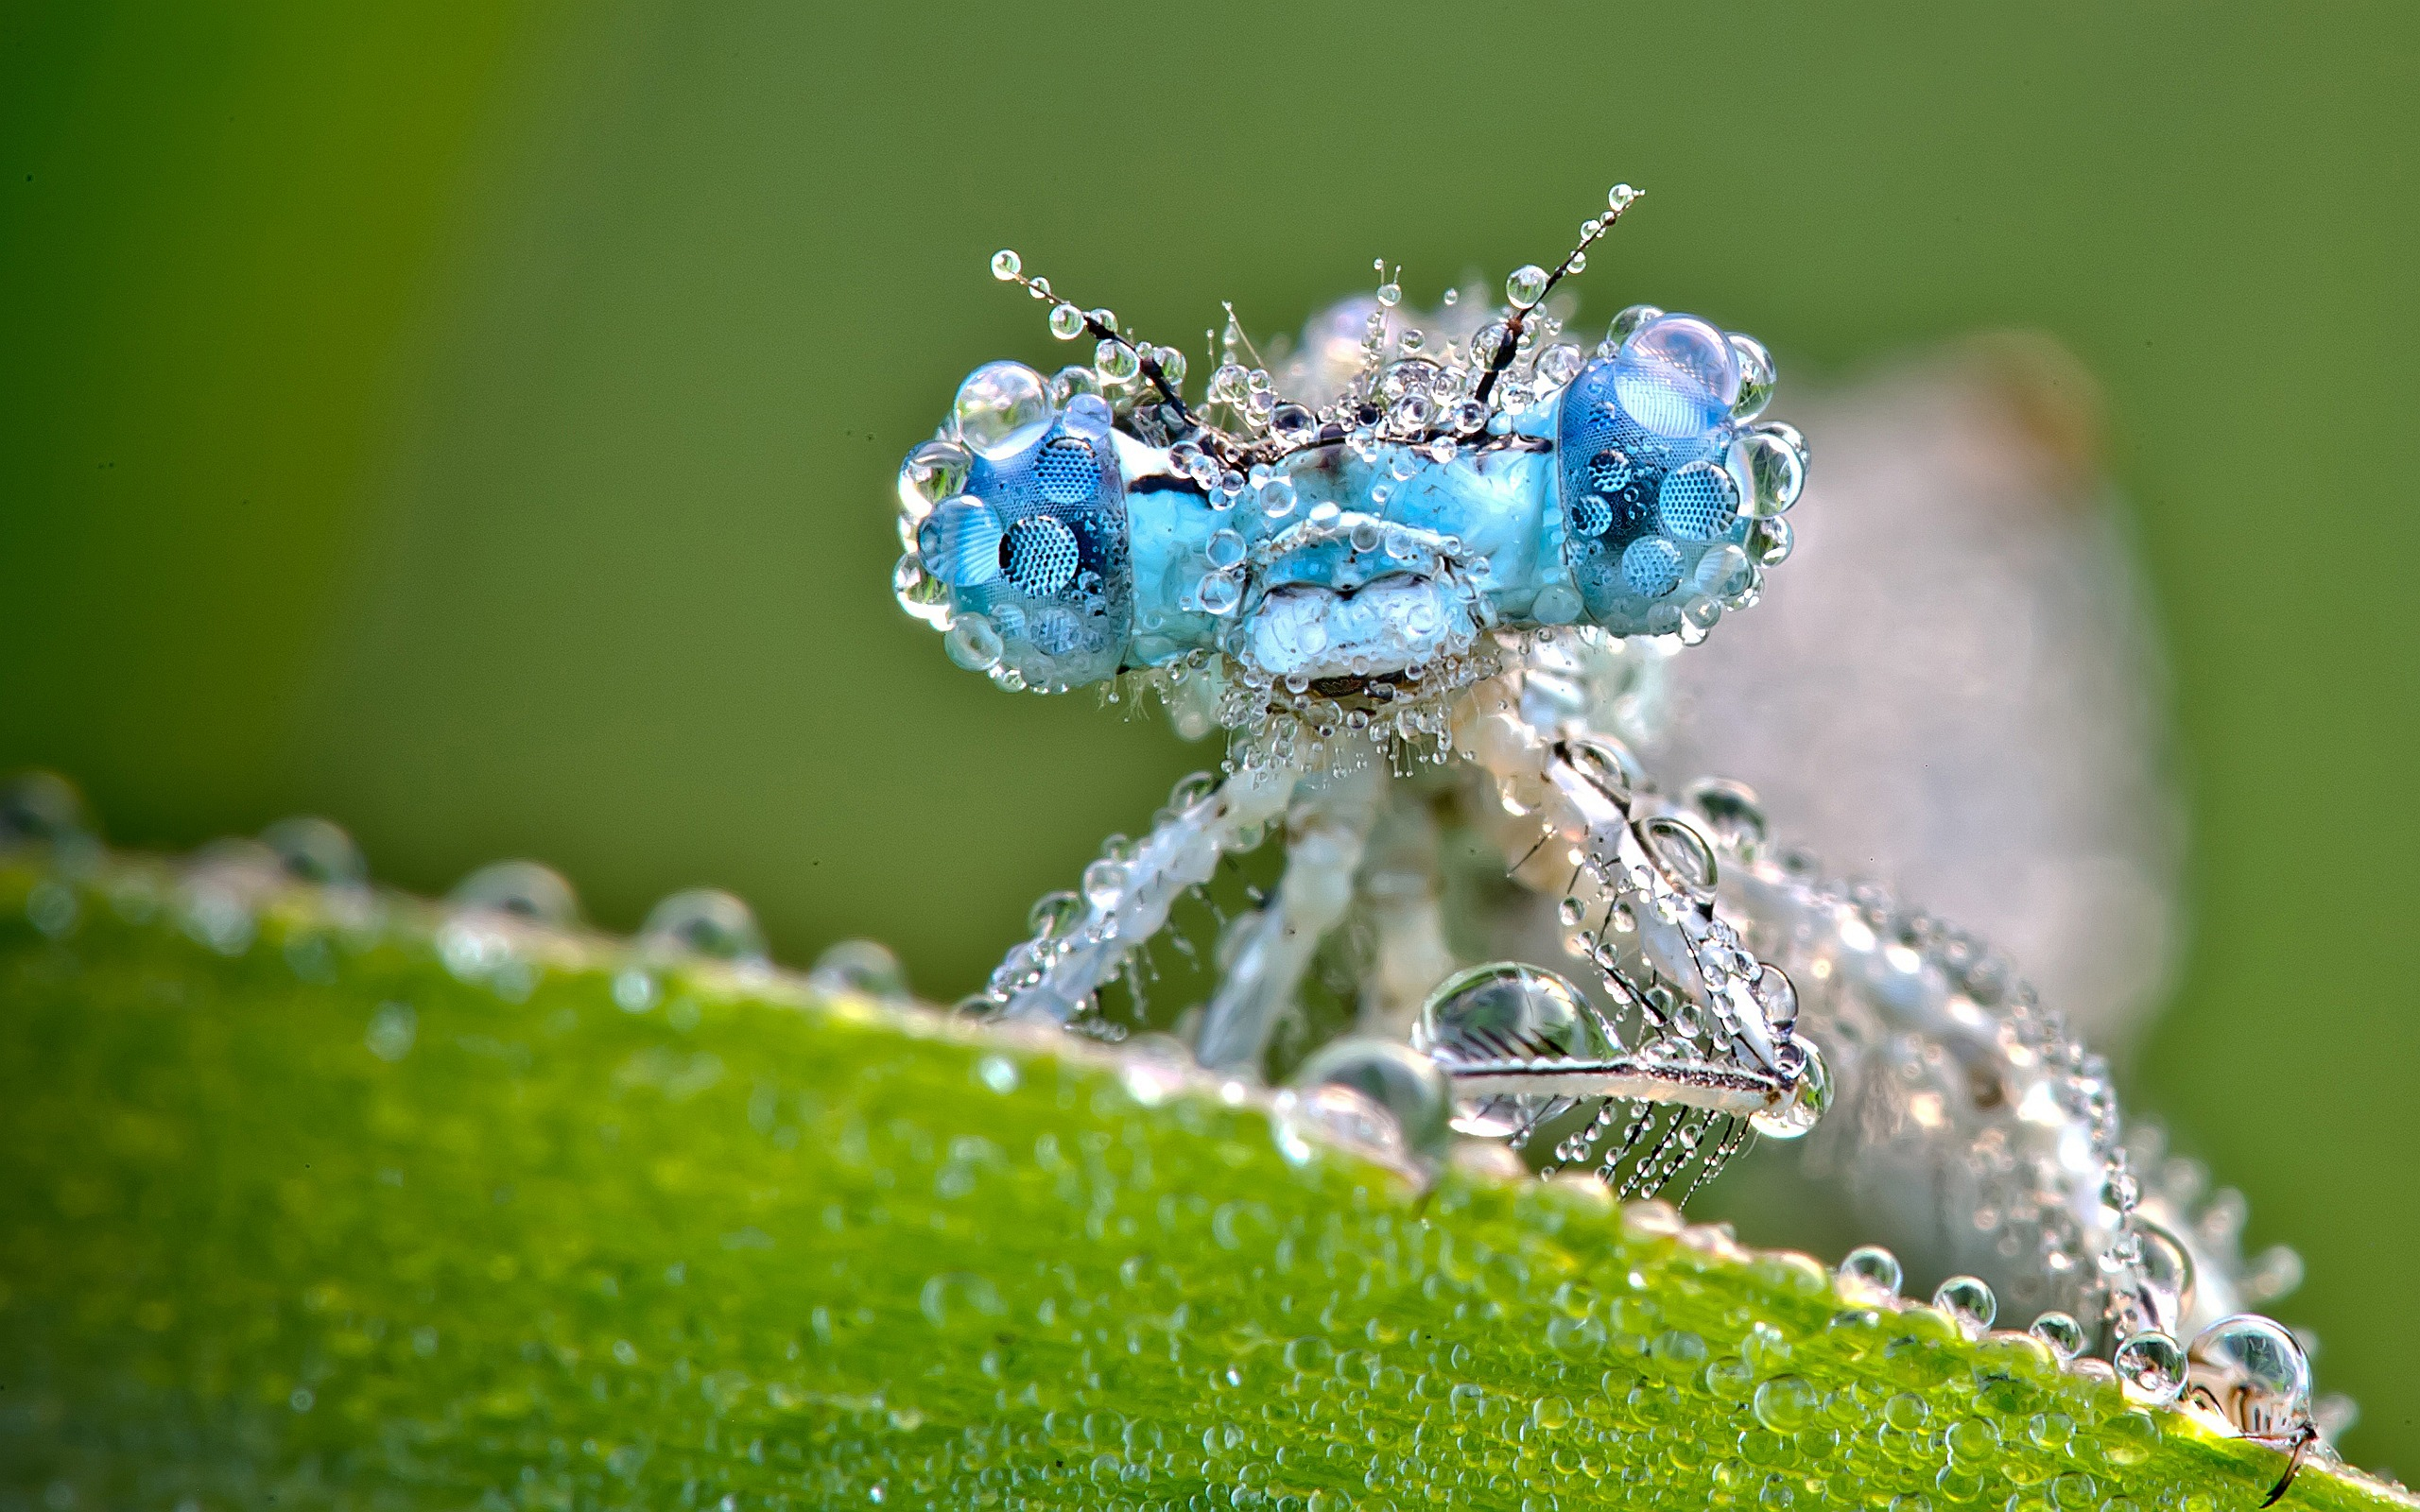 Dragonfly Water Drops